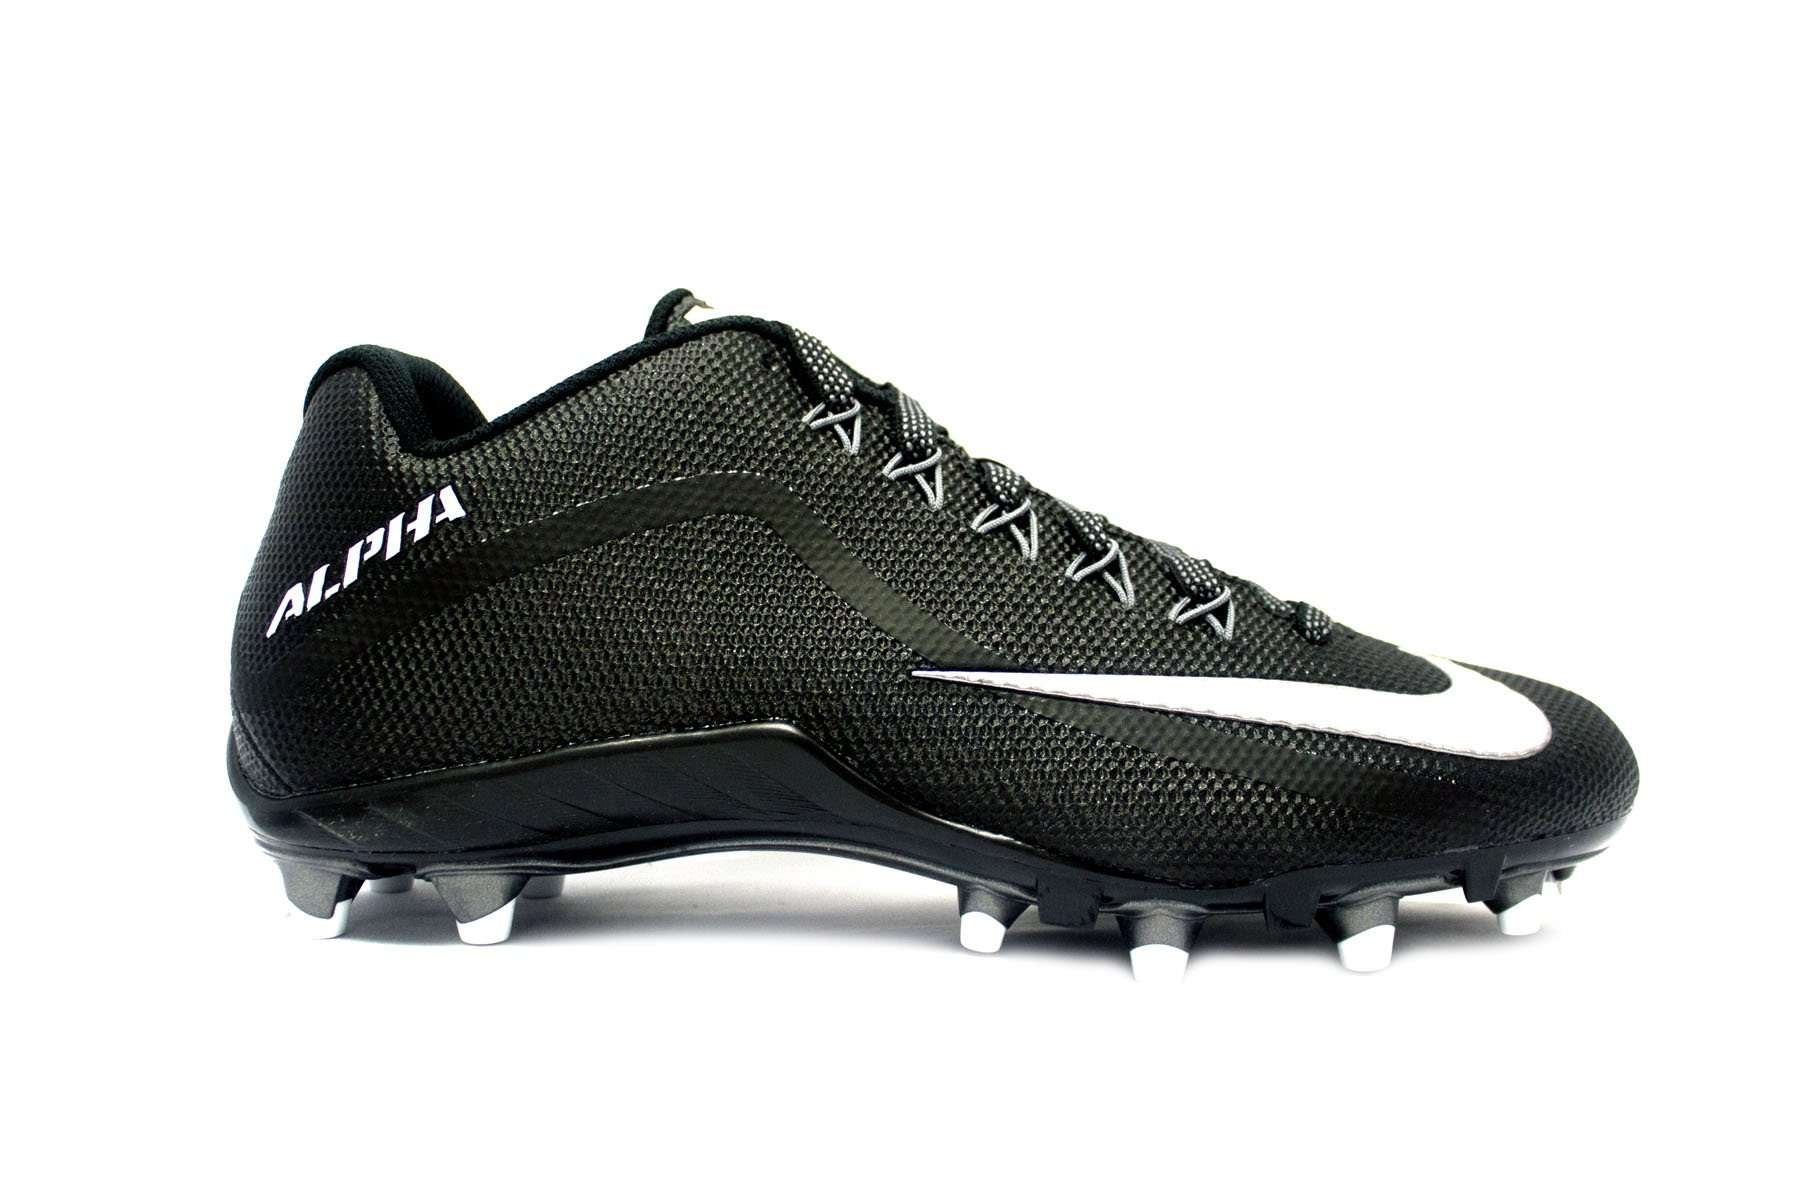 b2f8d654fc07 ... Nike Alpha Pro 2 TD Football Cleats - League Outfitters ...